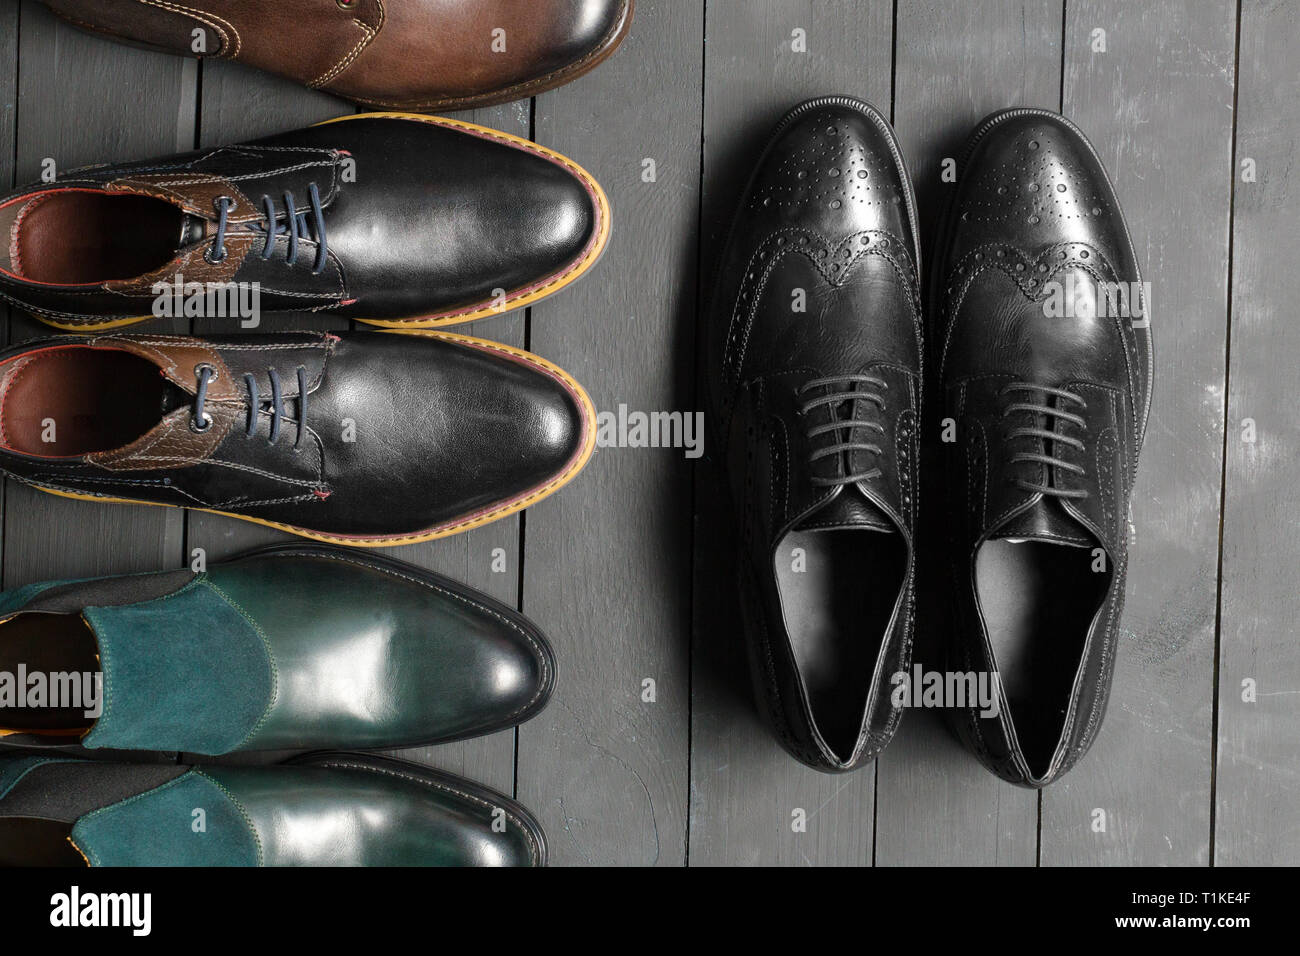 Leather men's shoes Stock Photo: 241987999 Alamy